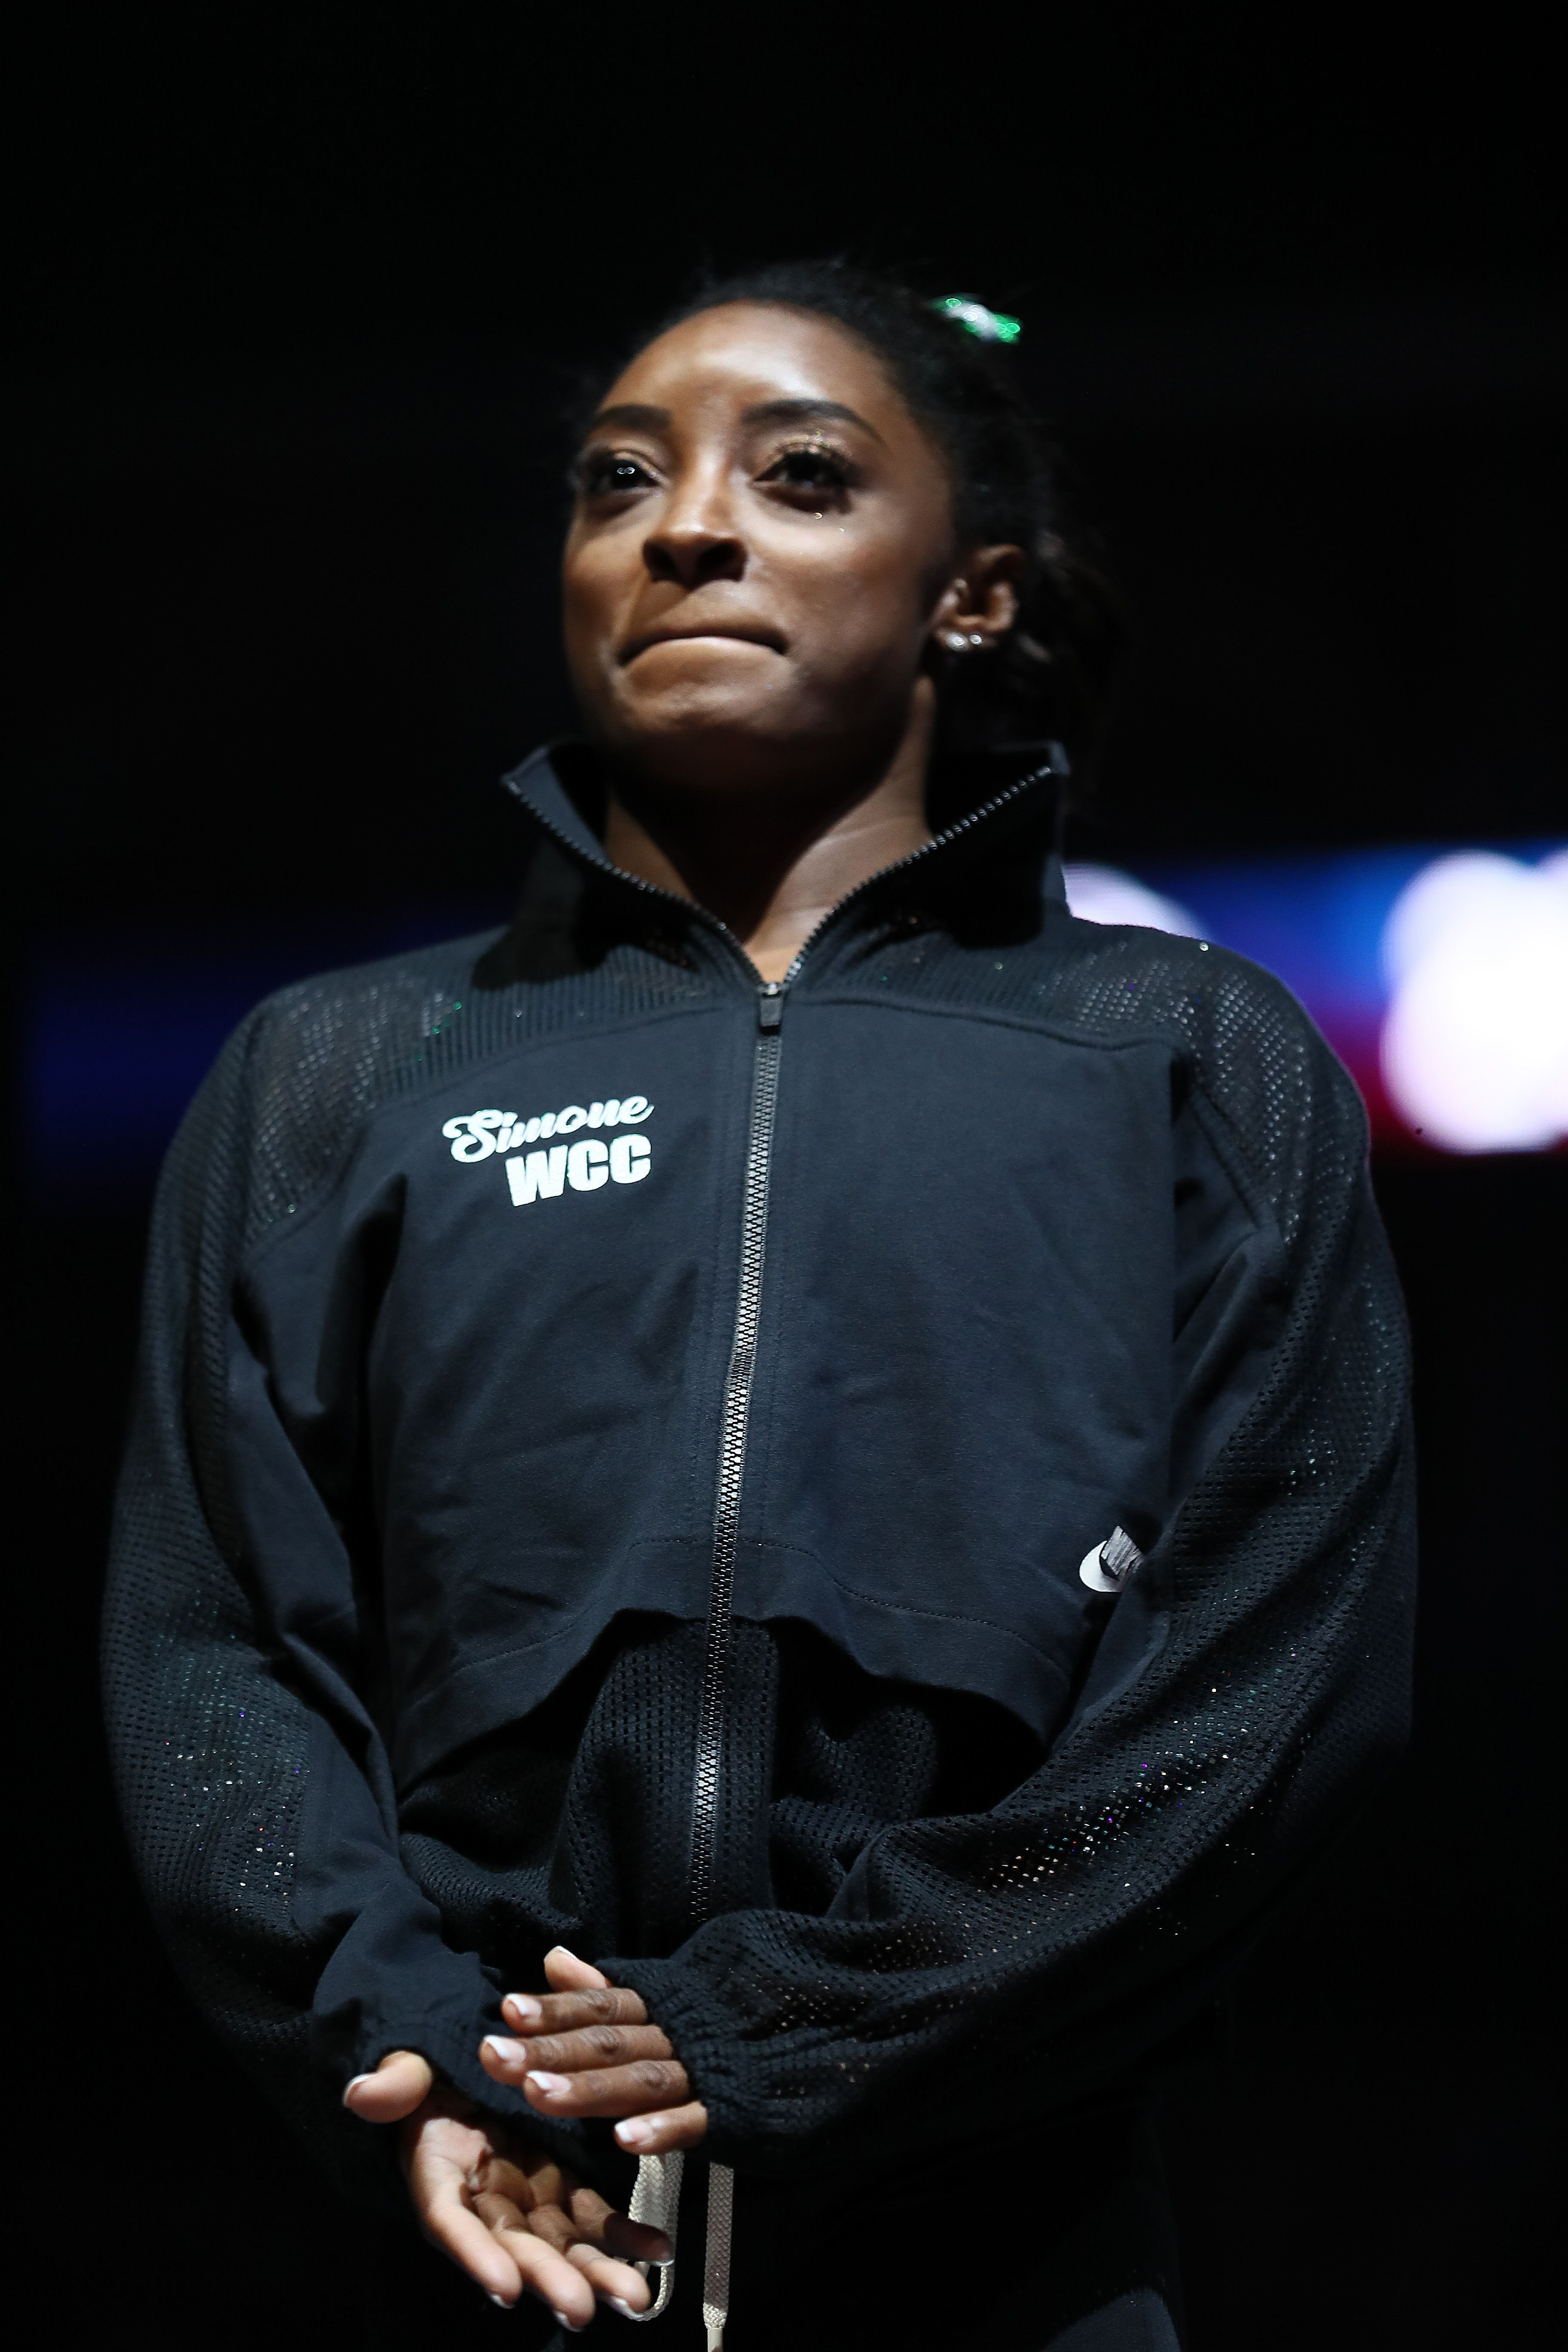 Simone Biles during the Senior Women's competition of the 2019 U.S. Gymnastics Championships at the Sprint Center on August 09, 2019 in Kansas City, Missouri. | Source: Getty Images